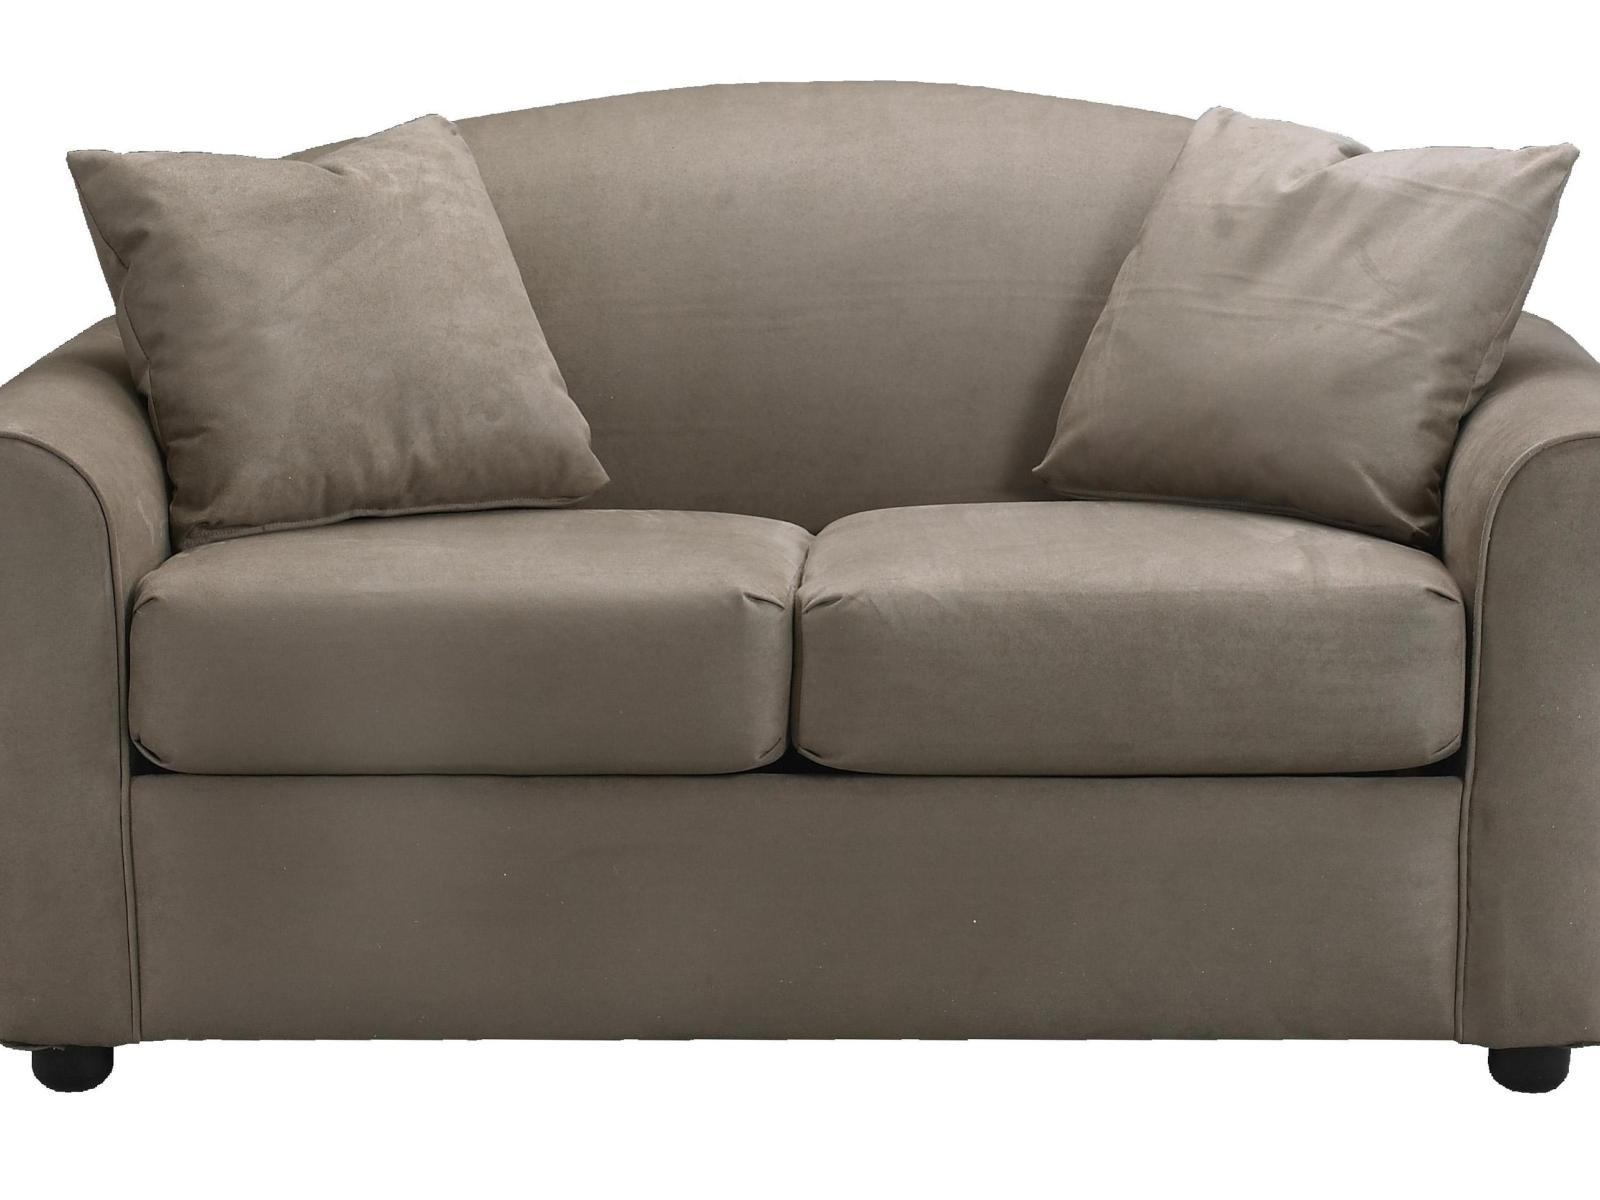 Furniture: Ikea Ektorp Chair | Faux Leather Loveseat | Loveseats Ikea In Lillberg Sofa Covers (Image 4 of 20)